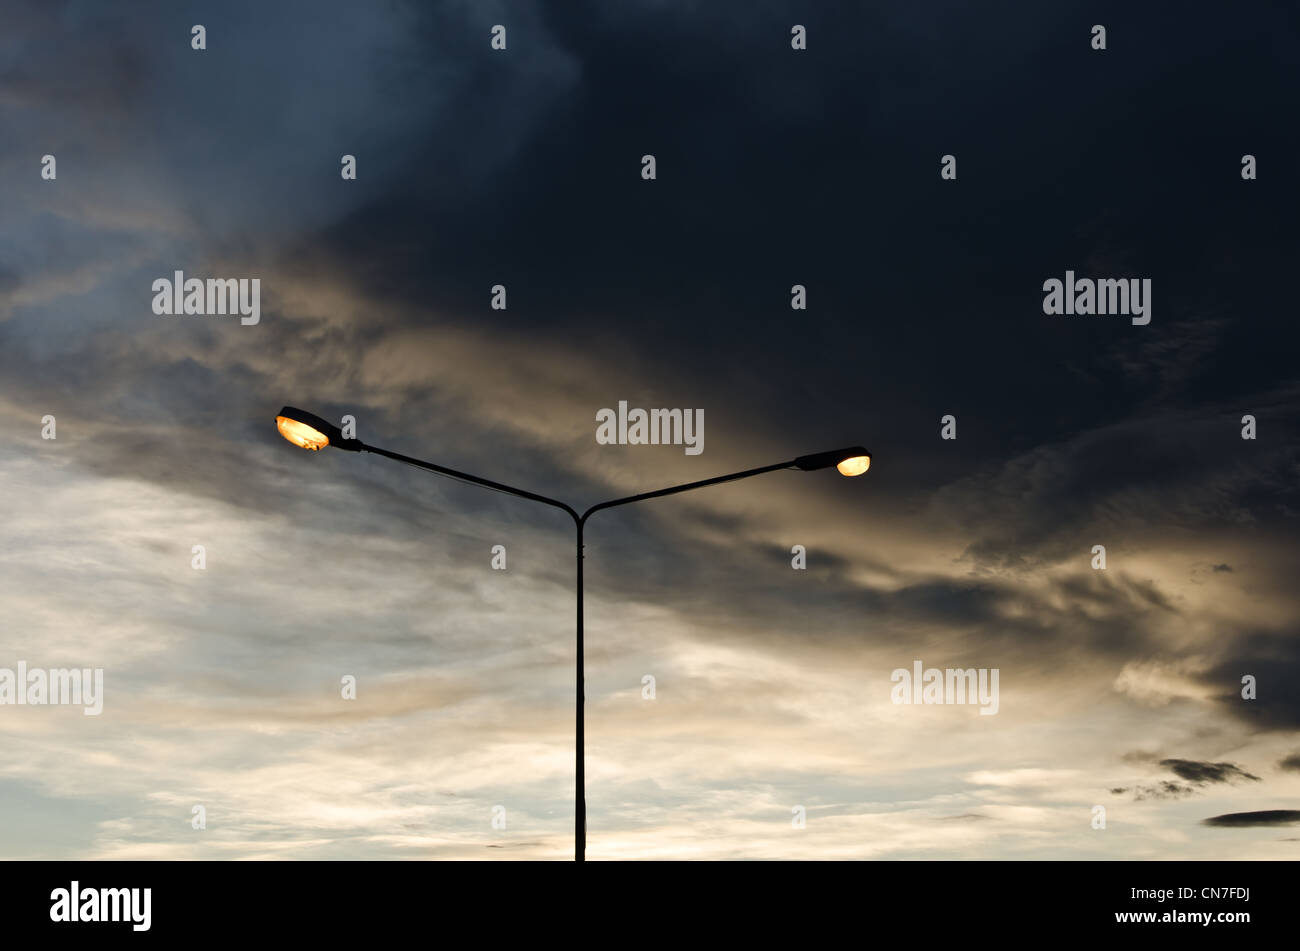 Light poles in evening on the street - Stock Image